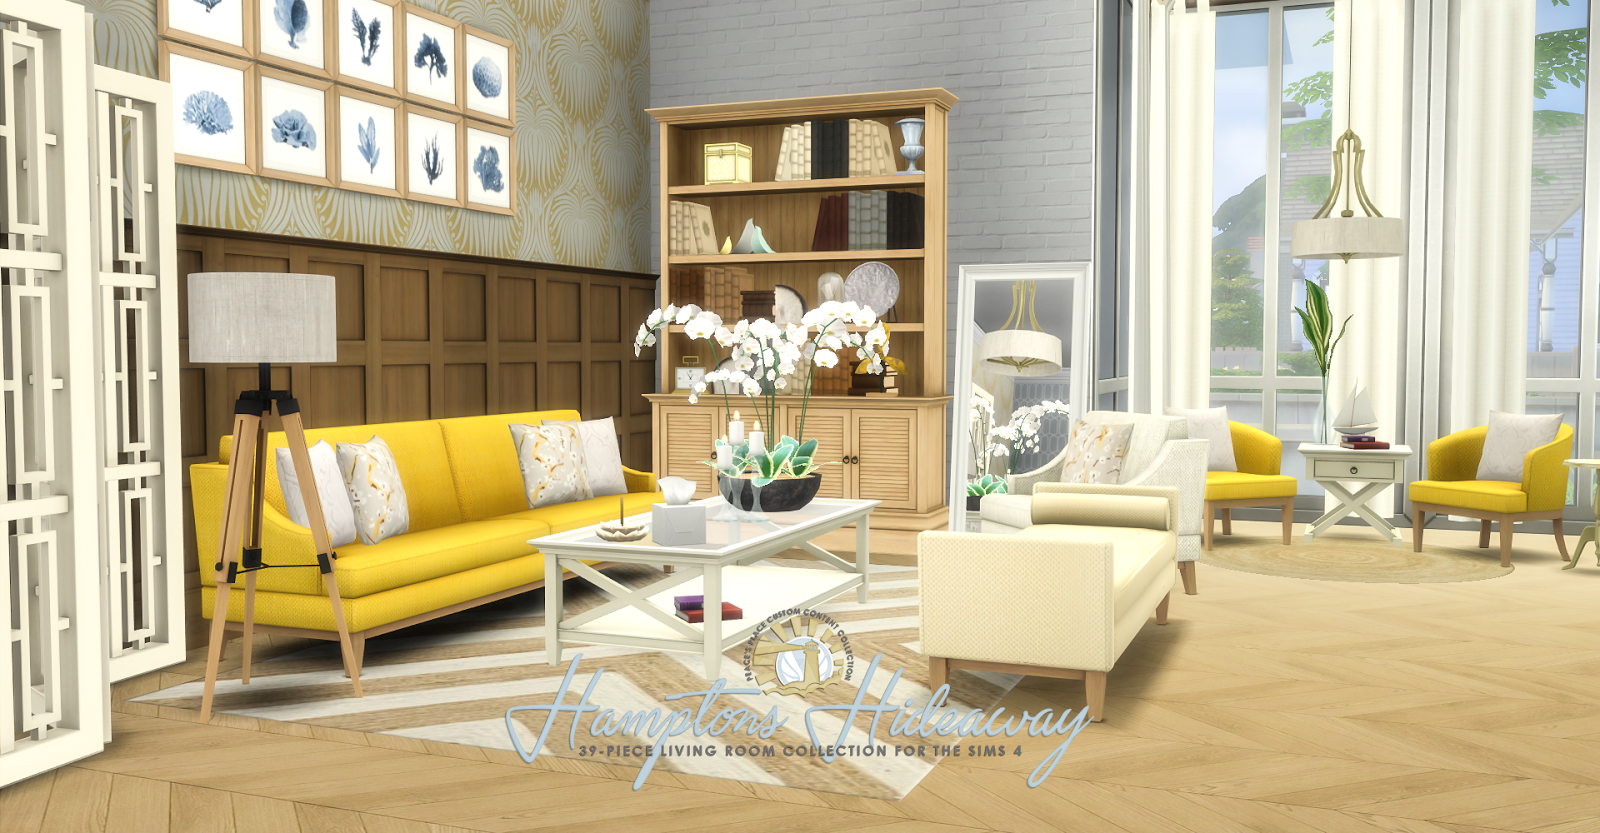 Simsational Designs: UPDATED: Hamptons Hideaway - Living Room Set for TS4